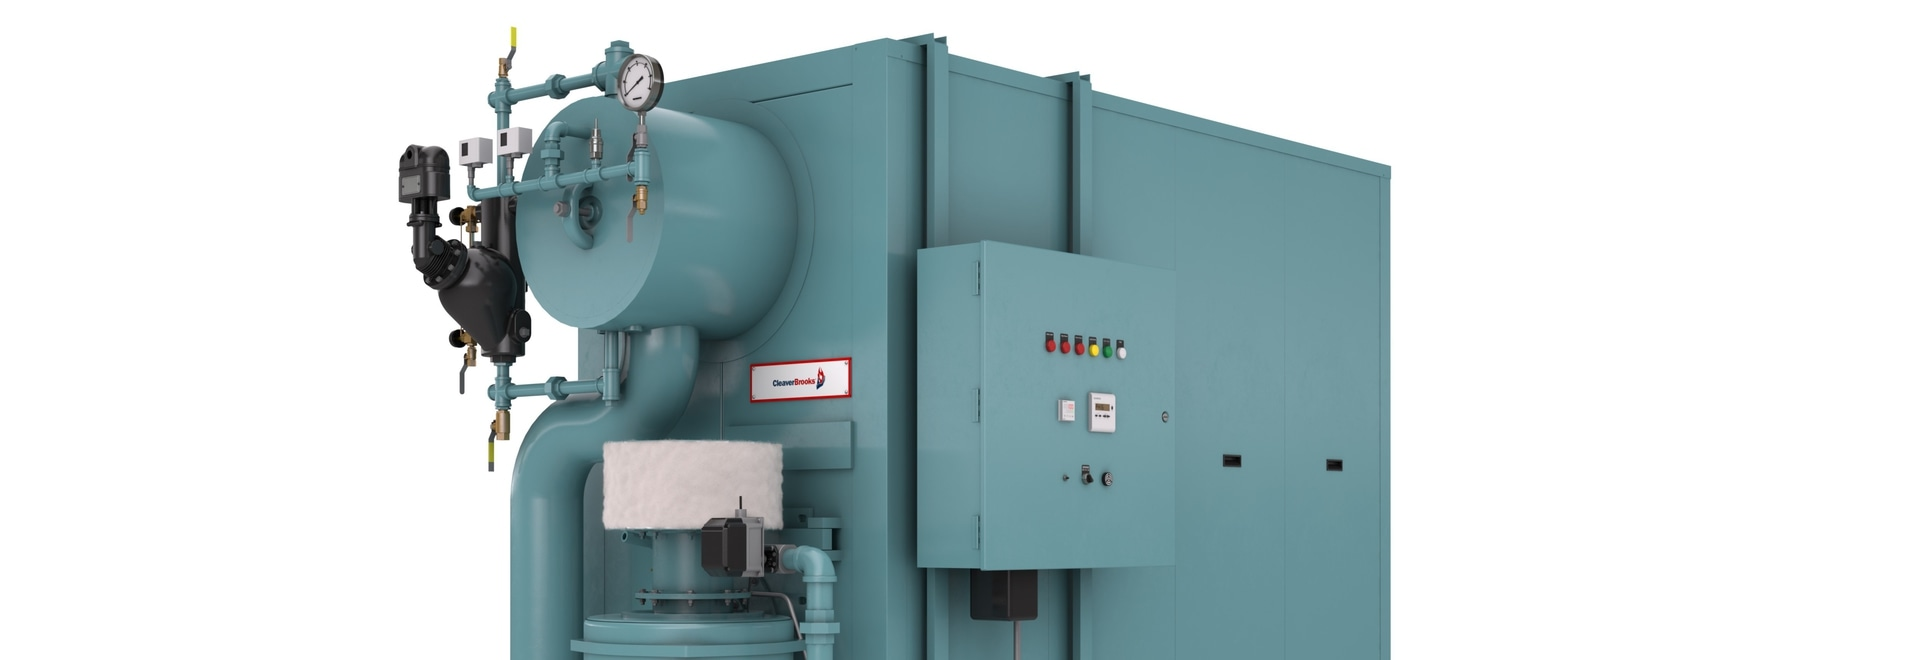 Cleaver-Brooks Introduces Model FLX Premix Boiler - Thomasville, GA ...